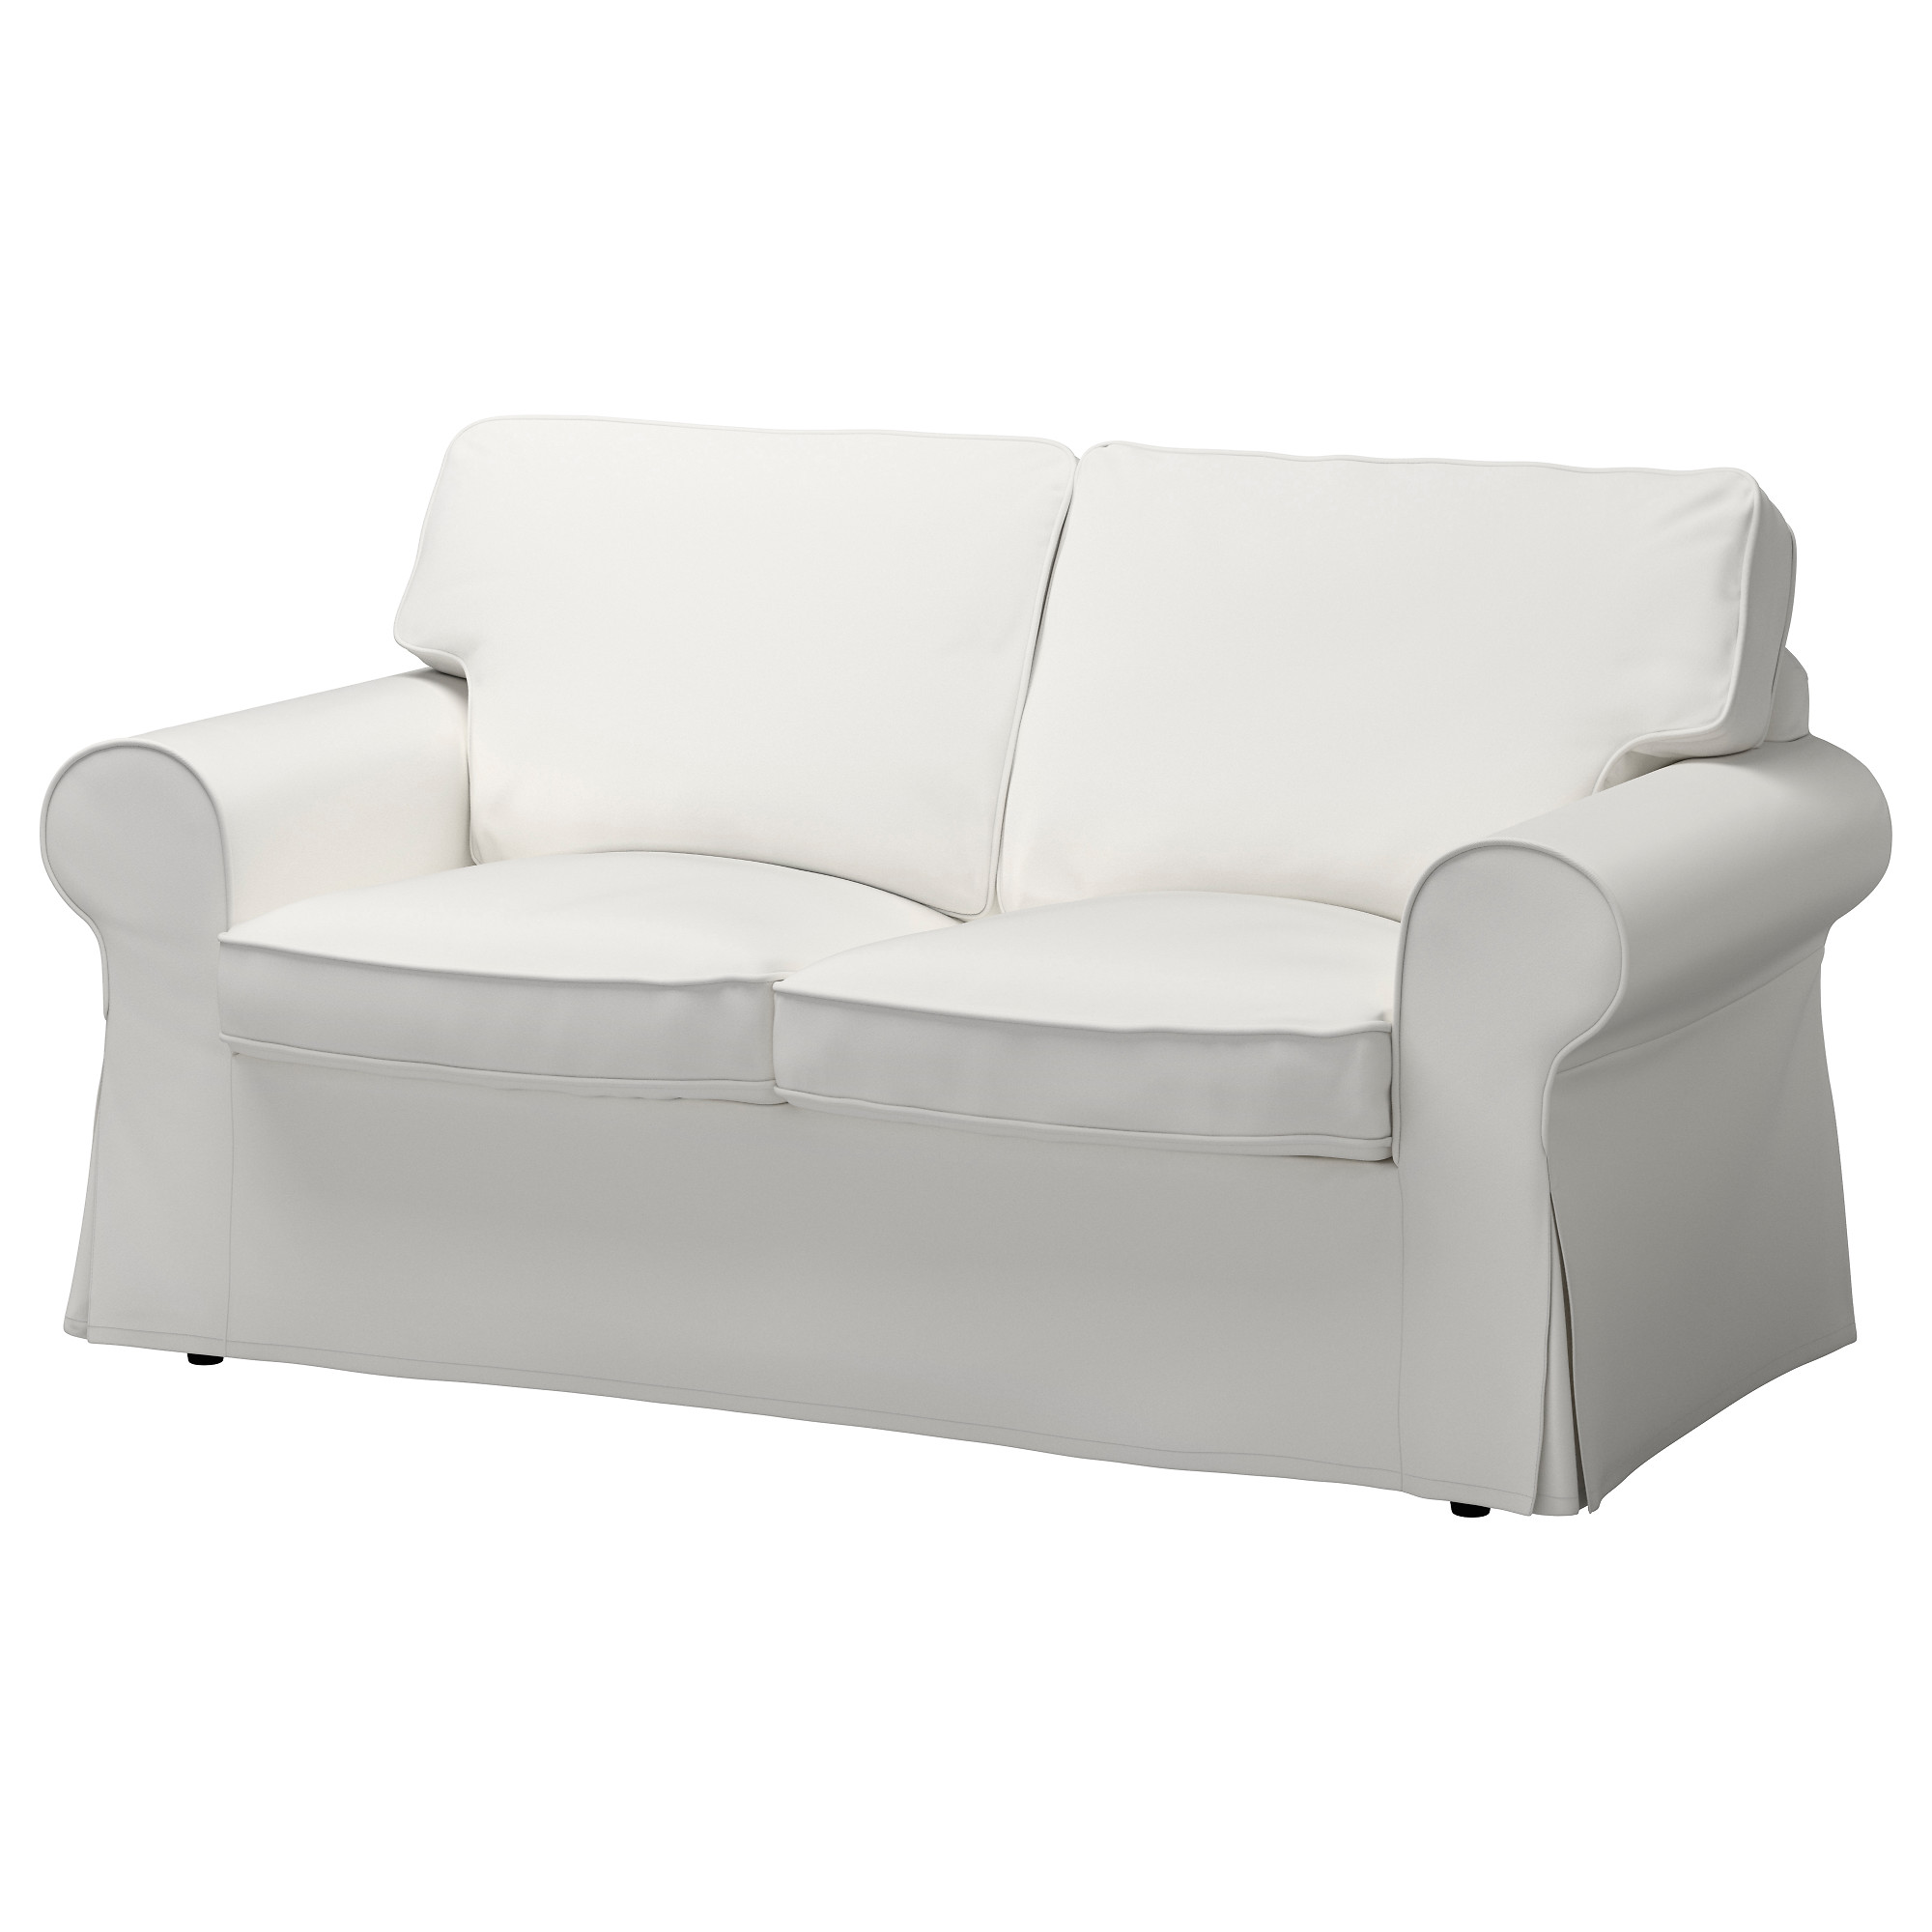 Full Size of Ektorp Sofa With Chaise Assembly Box Dimensions 2 Seater Cover Ikea Bezug Review 2018 Ebay Bed White Canada Covers At Xora U Form München Lederpflege Grau Sofa Ektorp Sofa